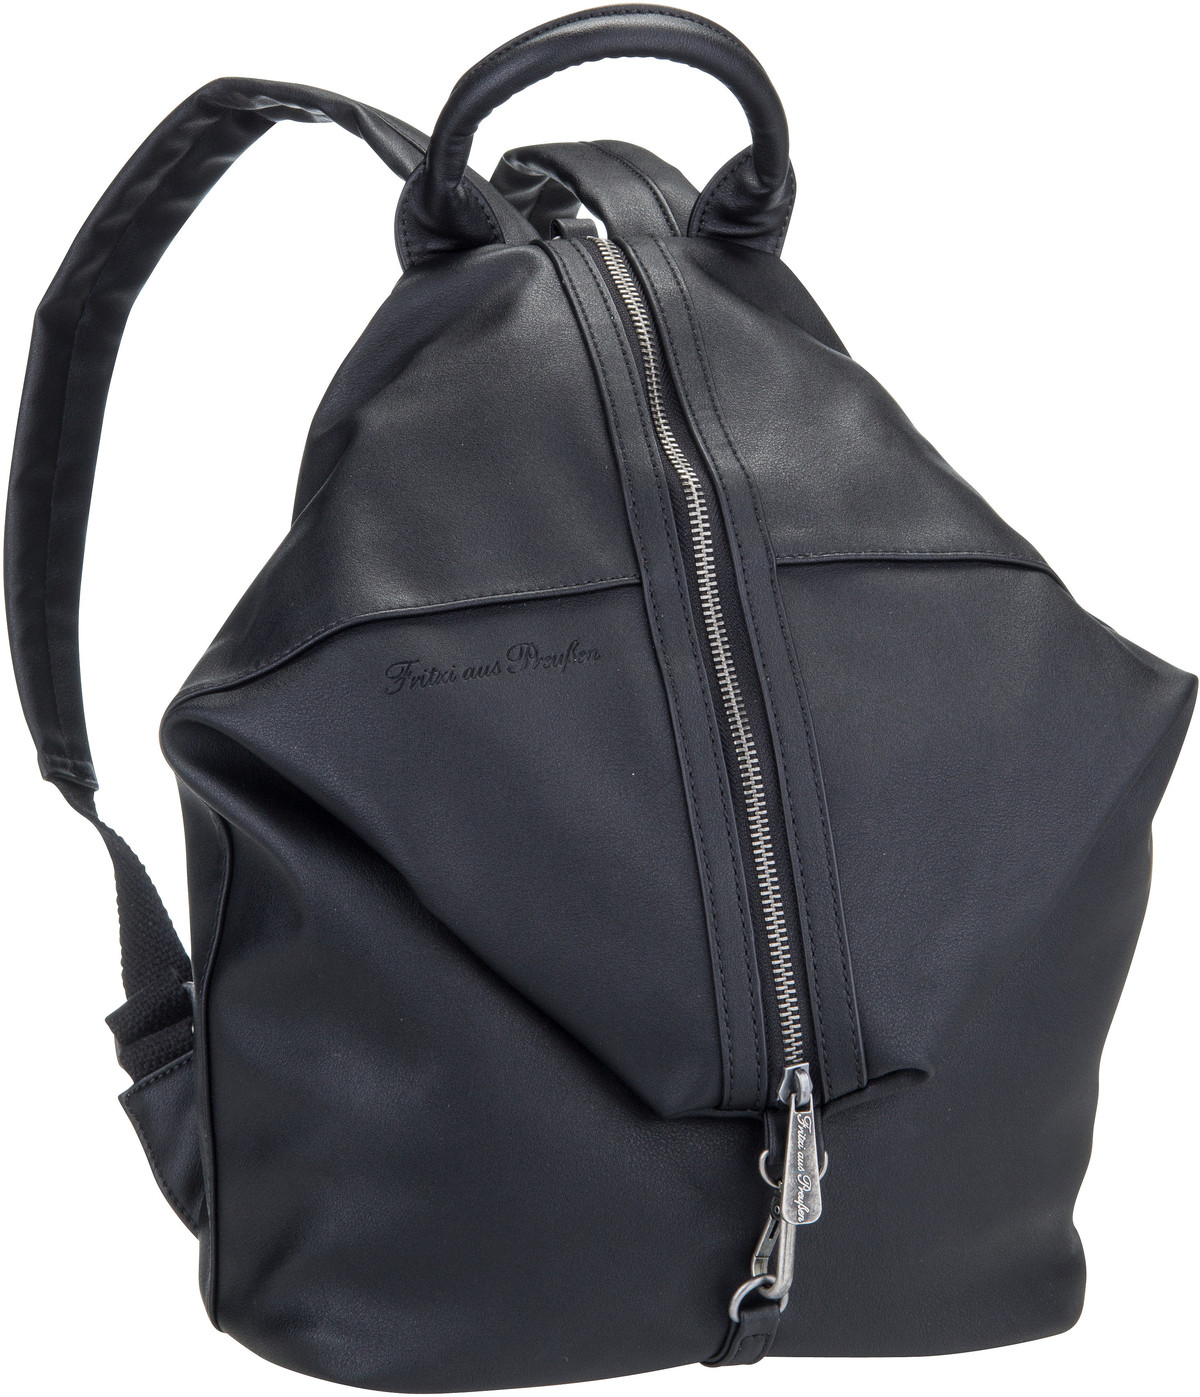 Rucksack / Daypack Marit Reloaded Philo Black